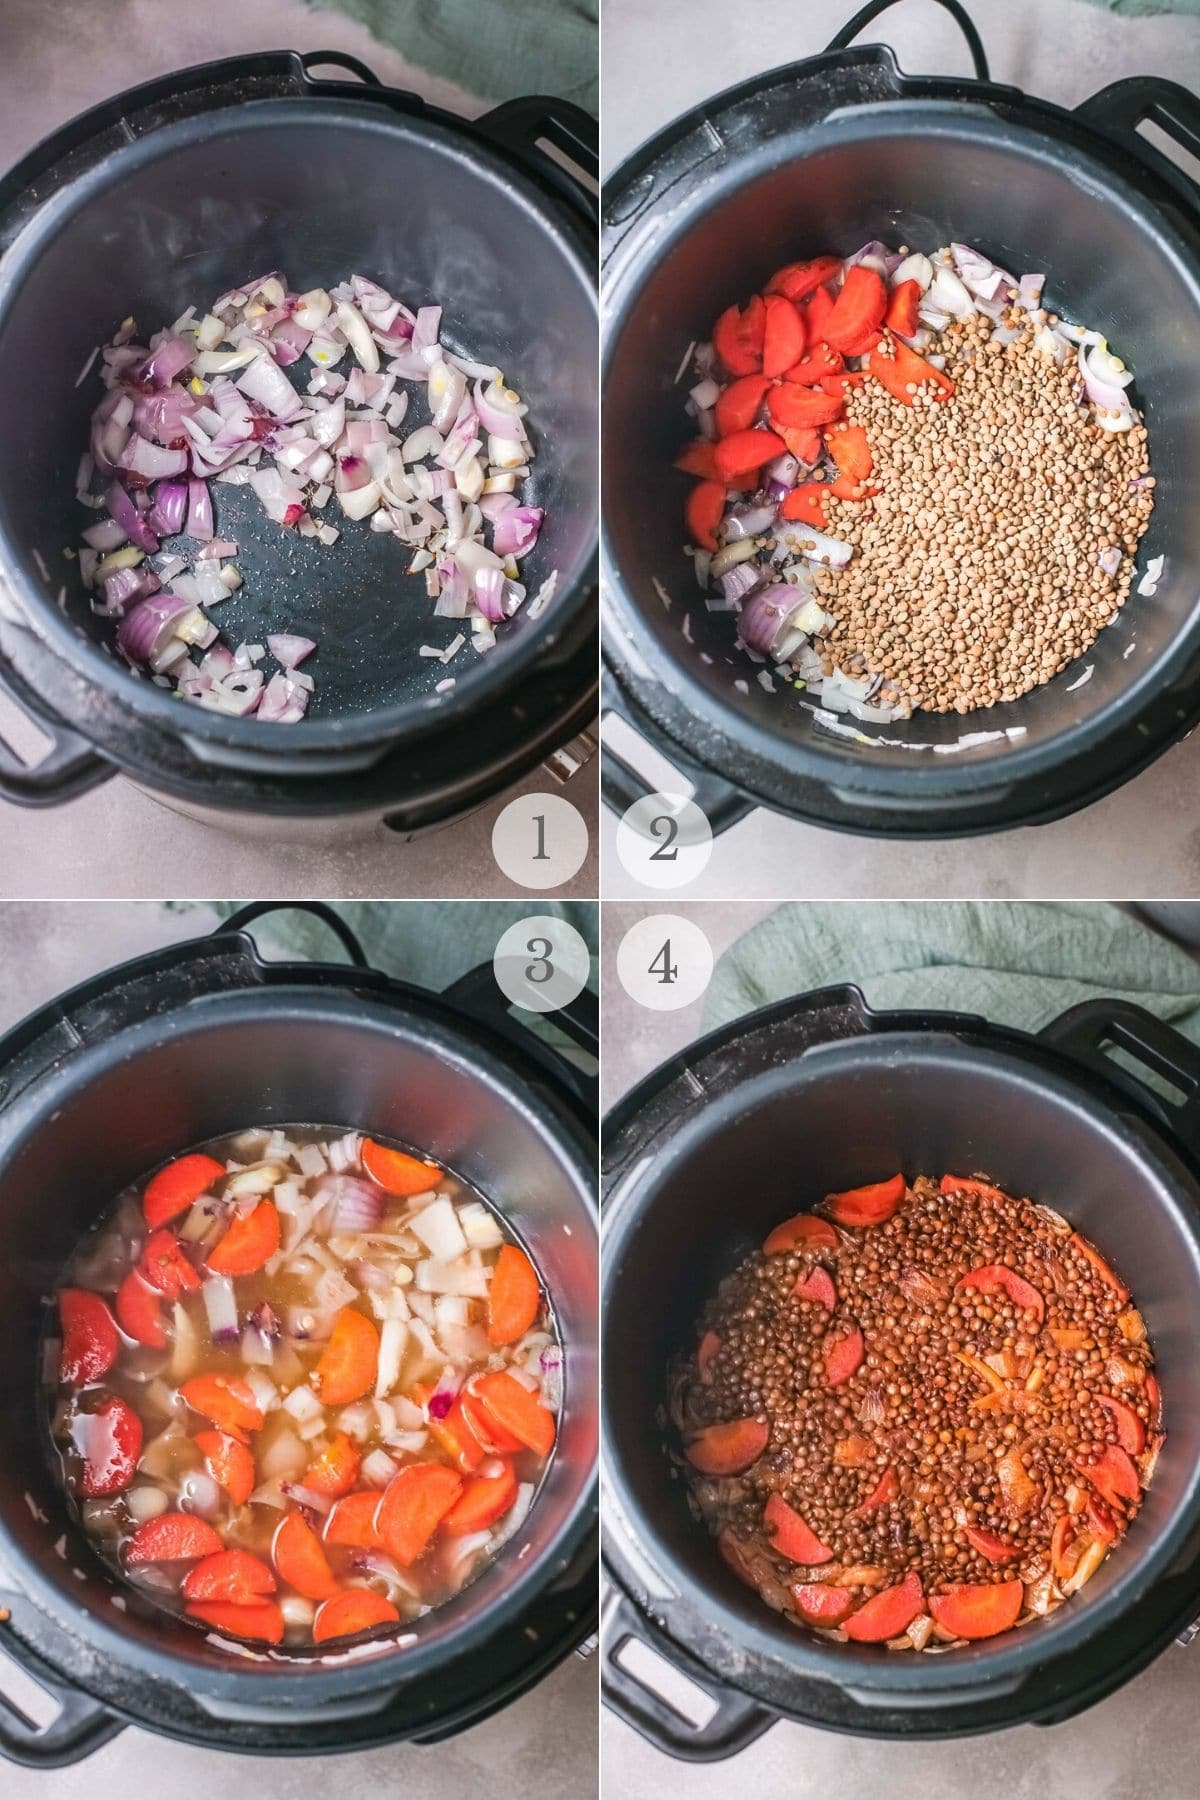 instant pot lentils recipe steps 1-4